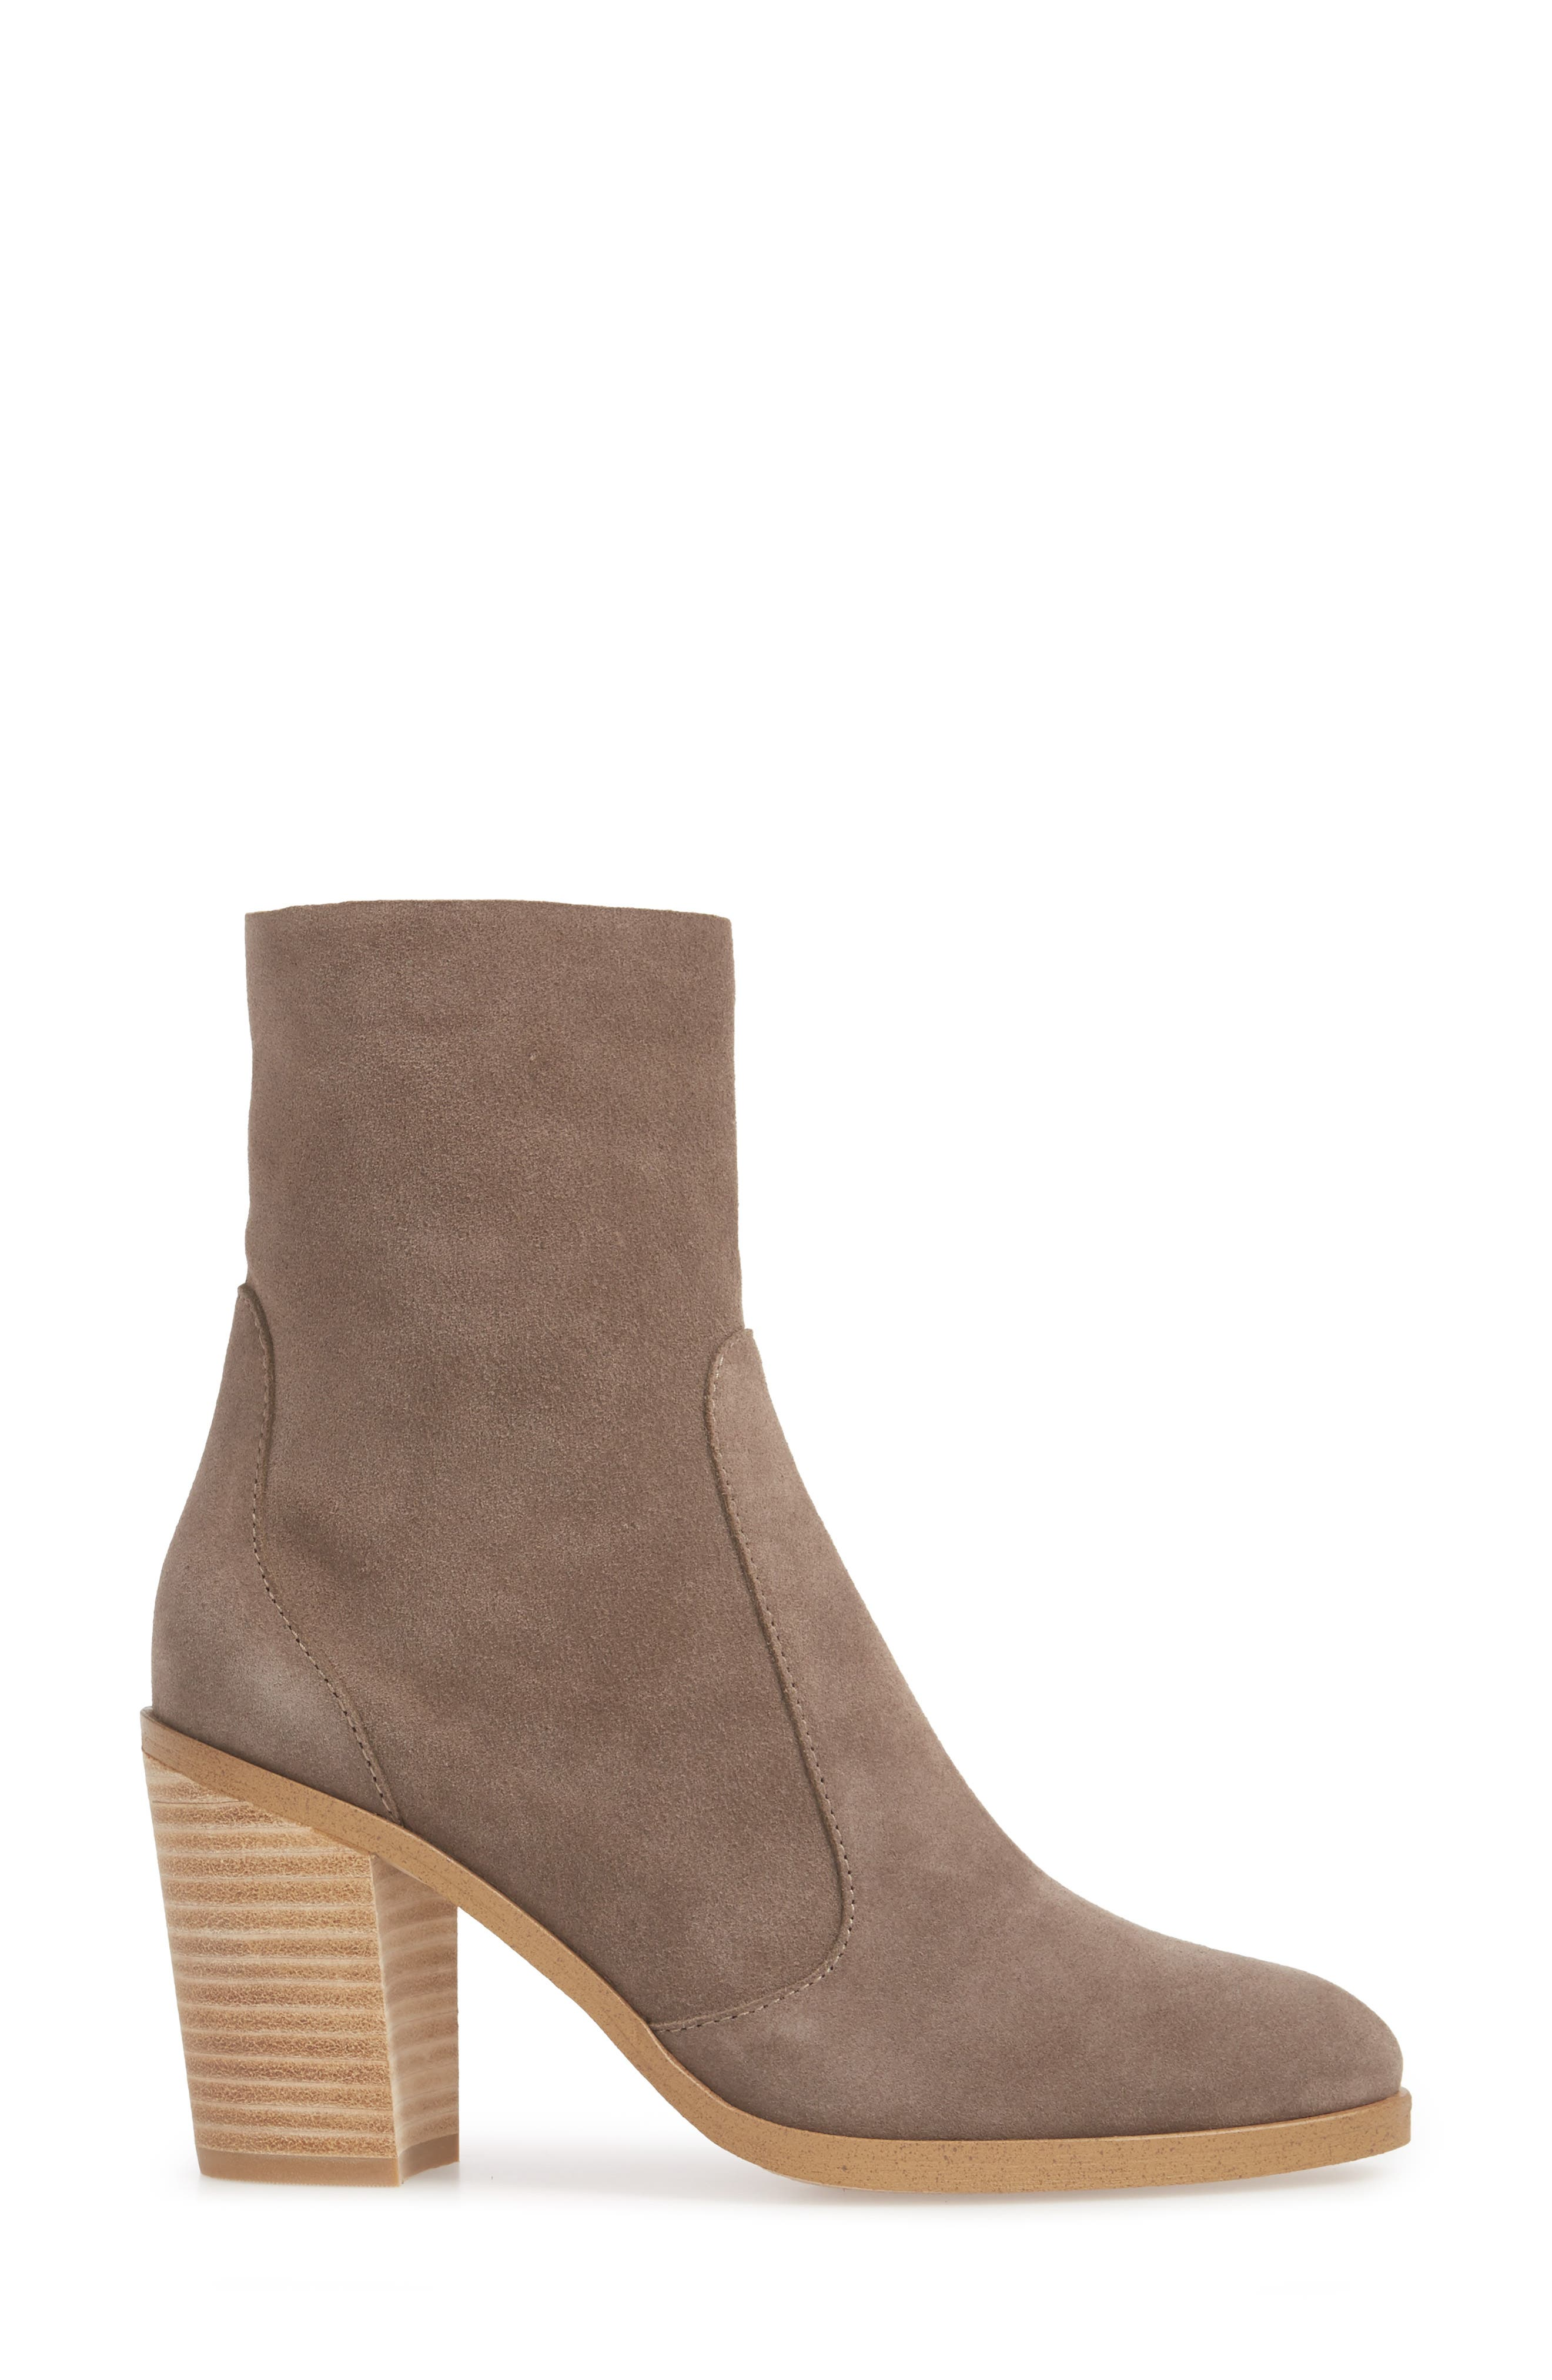 Roselyn II Almond Toe Bootie,                             Alternate thumbnail 3, color,                             LIGHT CHARCOAL SUEDE